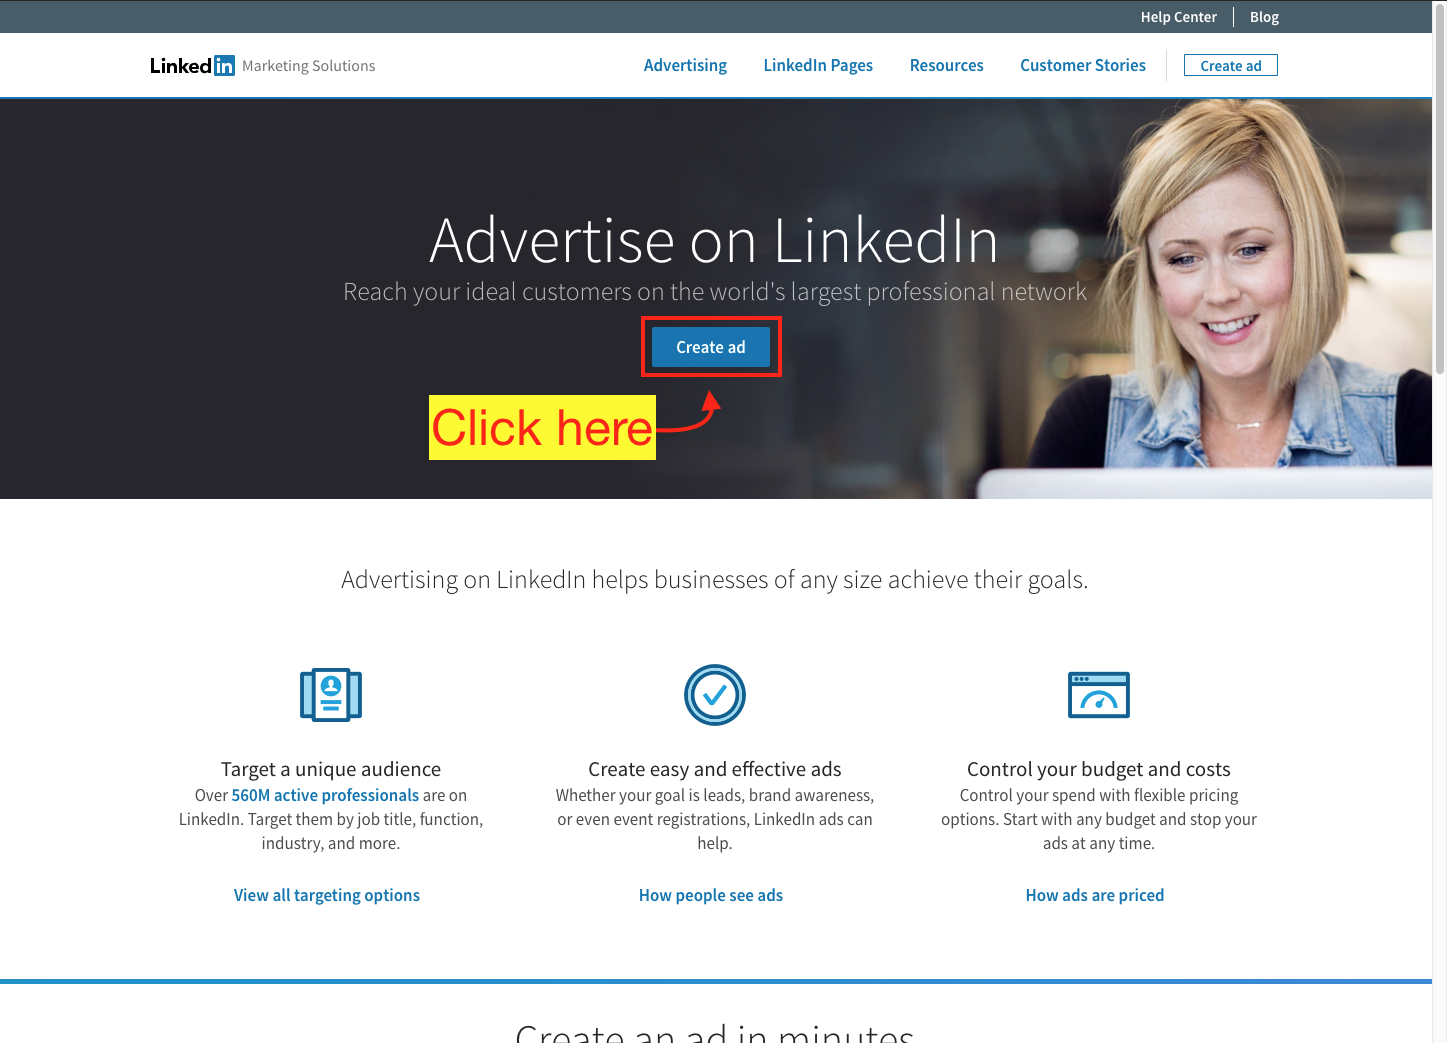 How to Create a LinkedIn Ad Account - Step 4 Screenshot